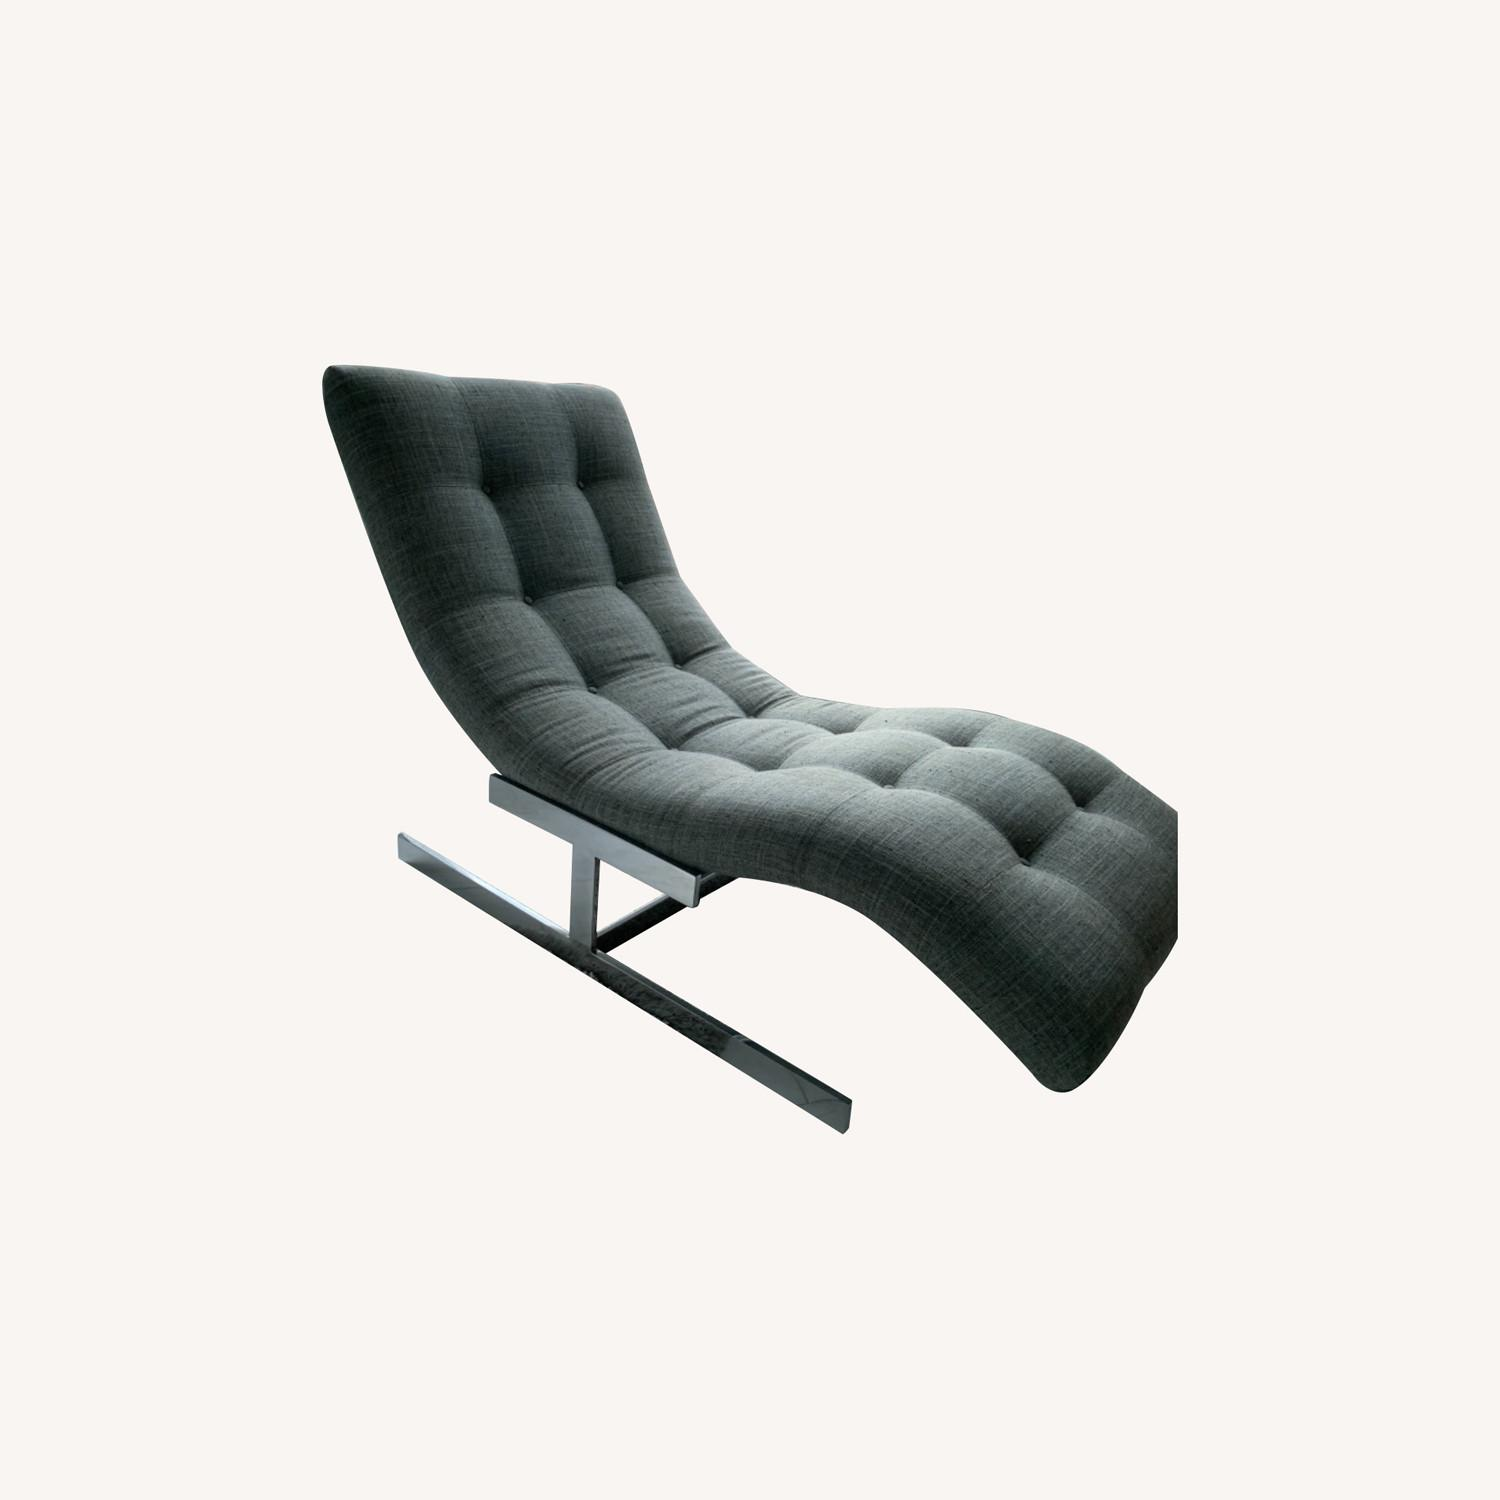 Tufted Recliner Chair - image-0